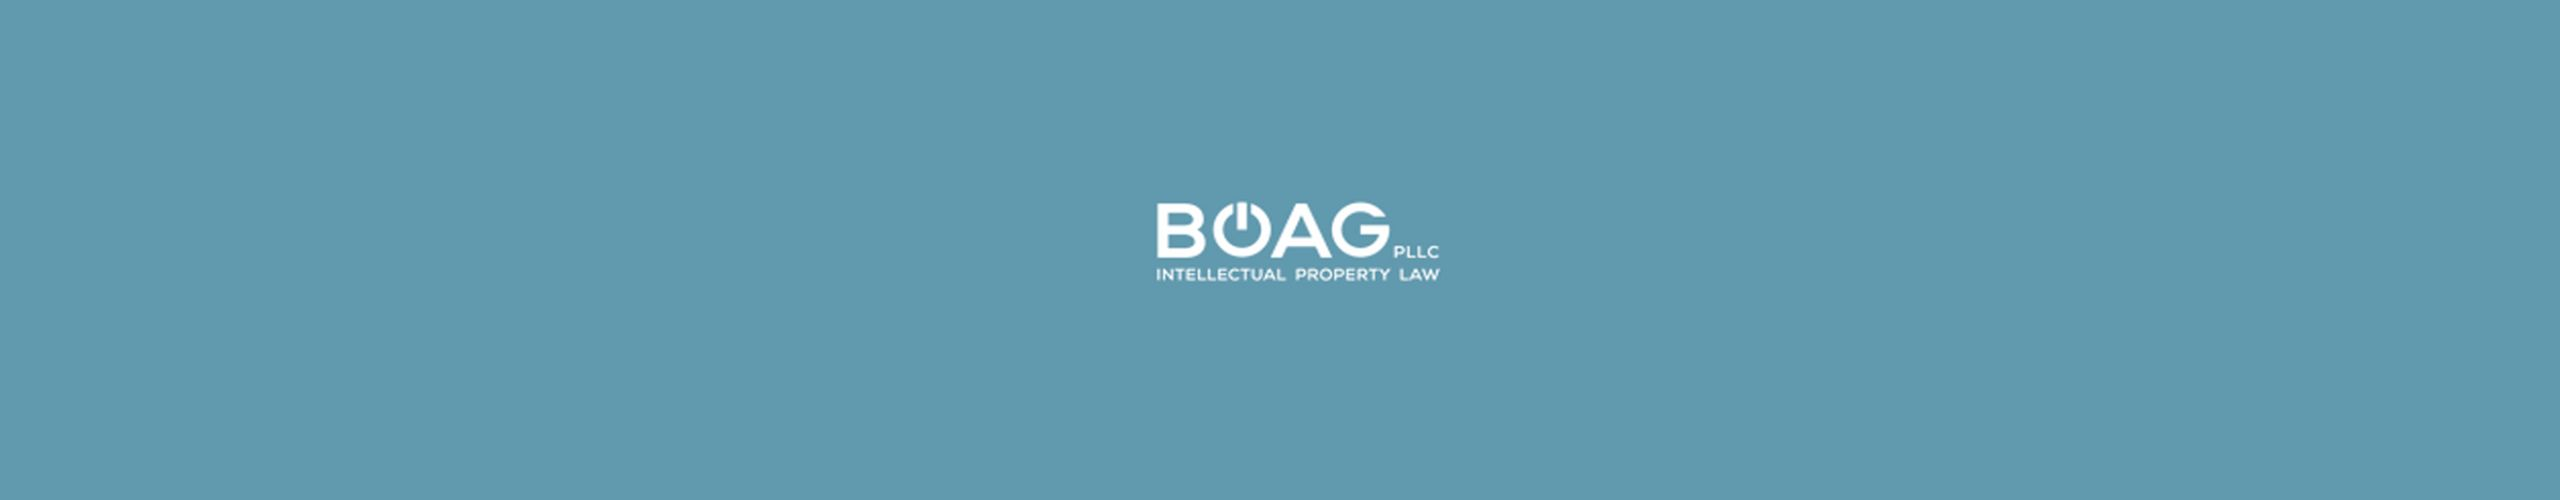 boag-intellectual-property-law-logo